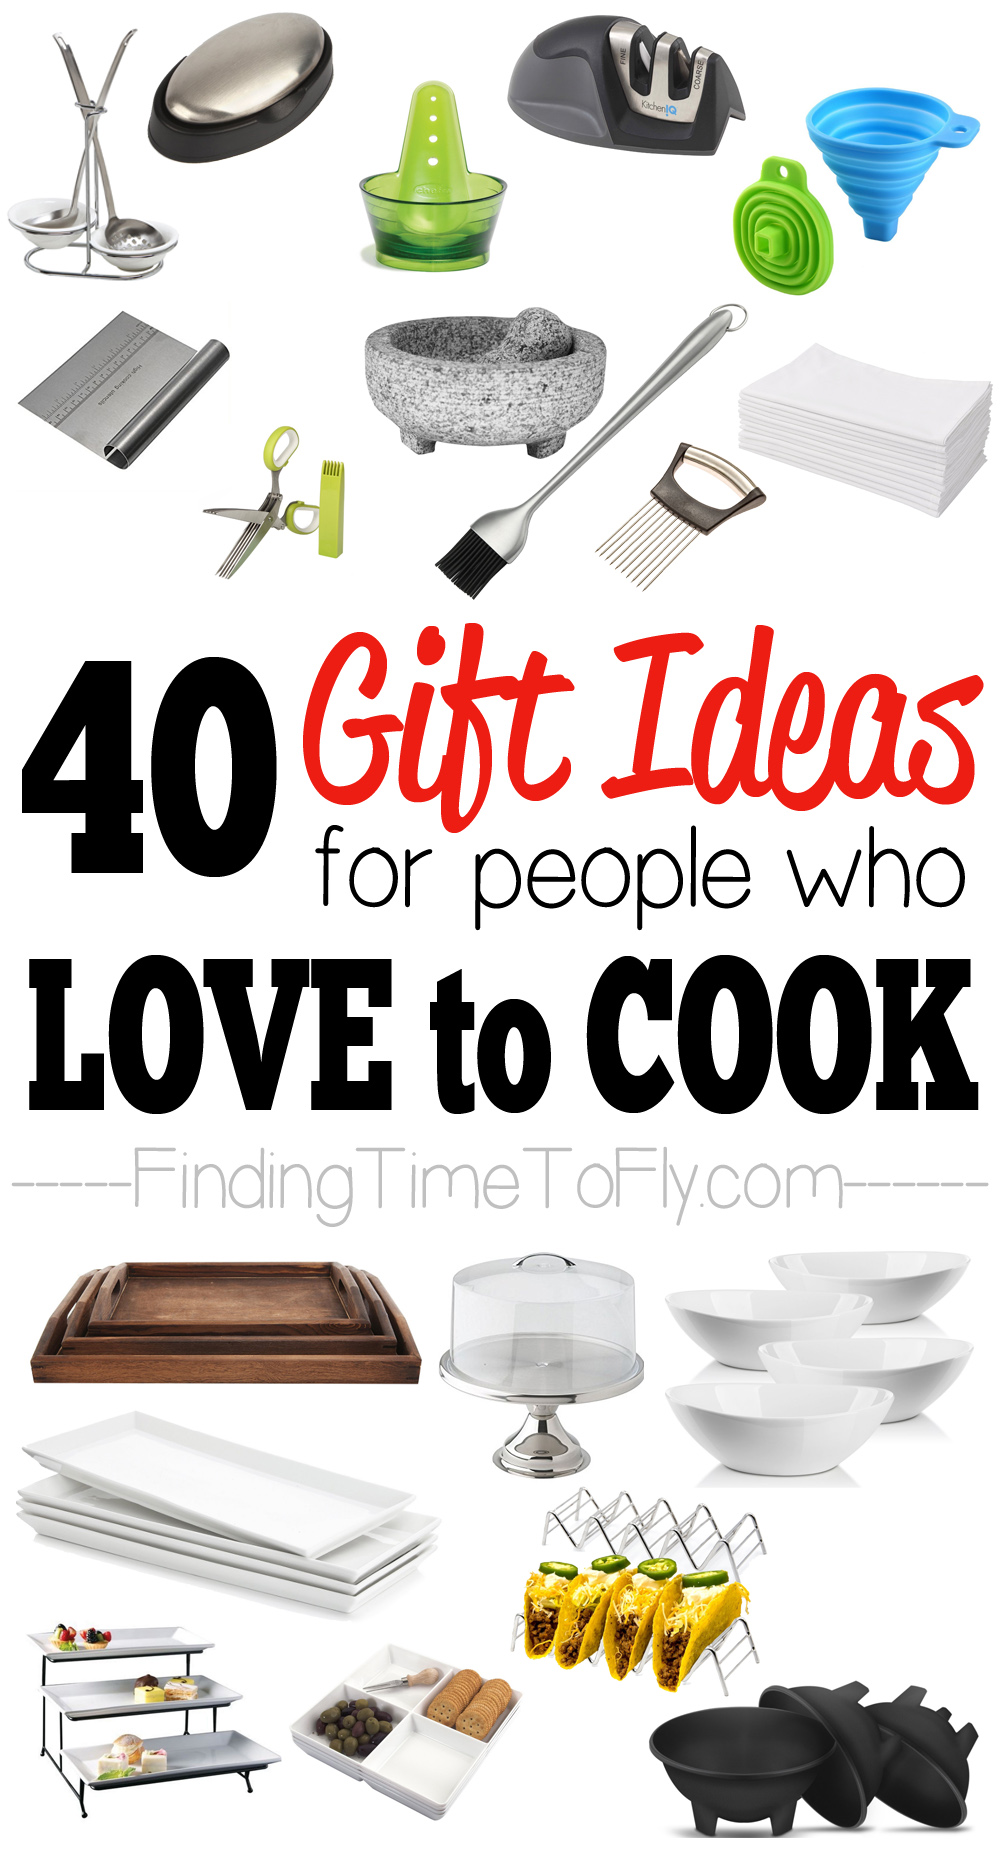 40 kitchen gifts and gadgets - finding time to fly